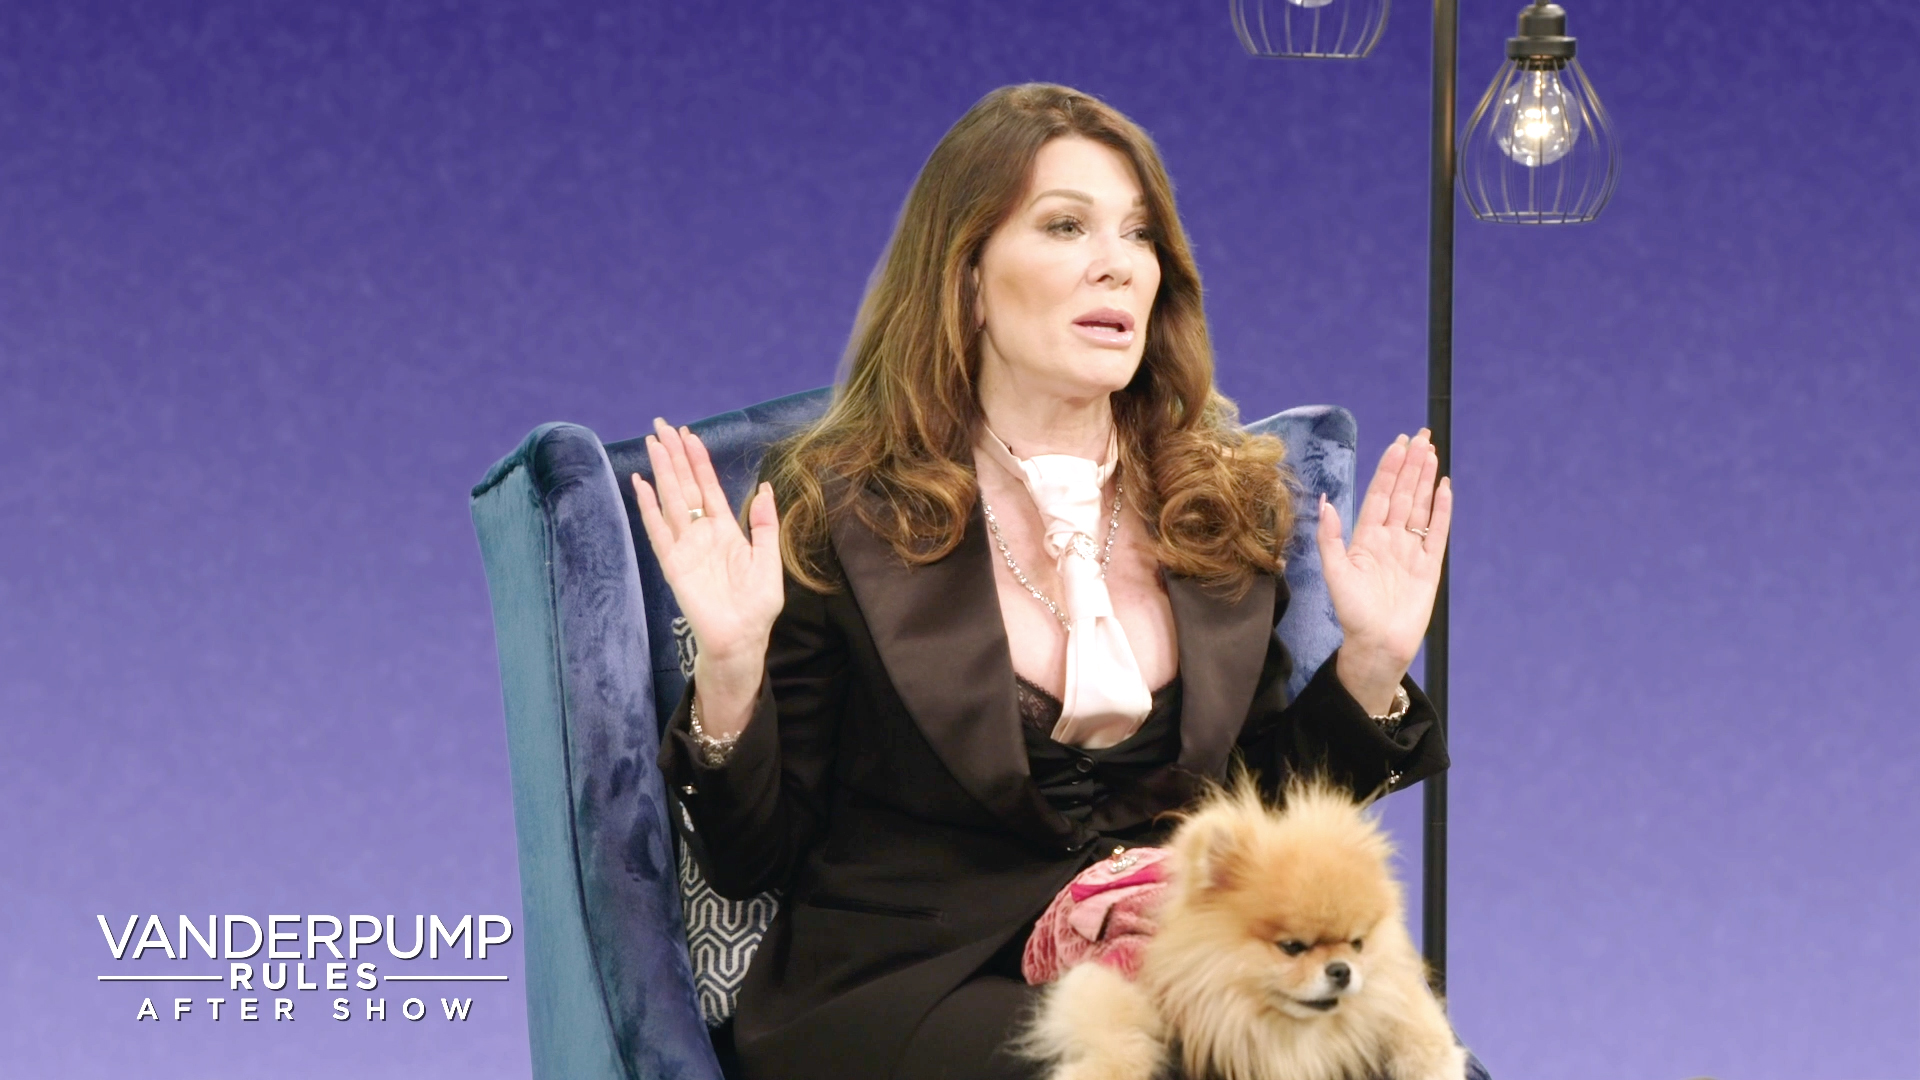 Will Lisa Vanderpump Continue to Check up on James Kennedy Forever?